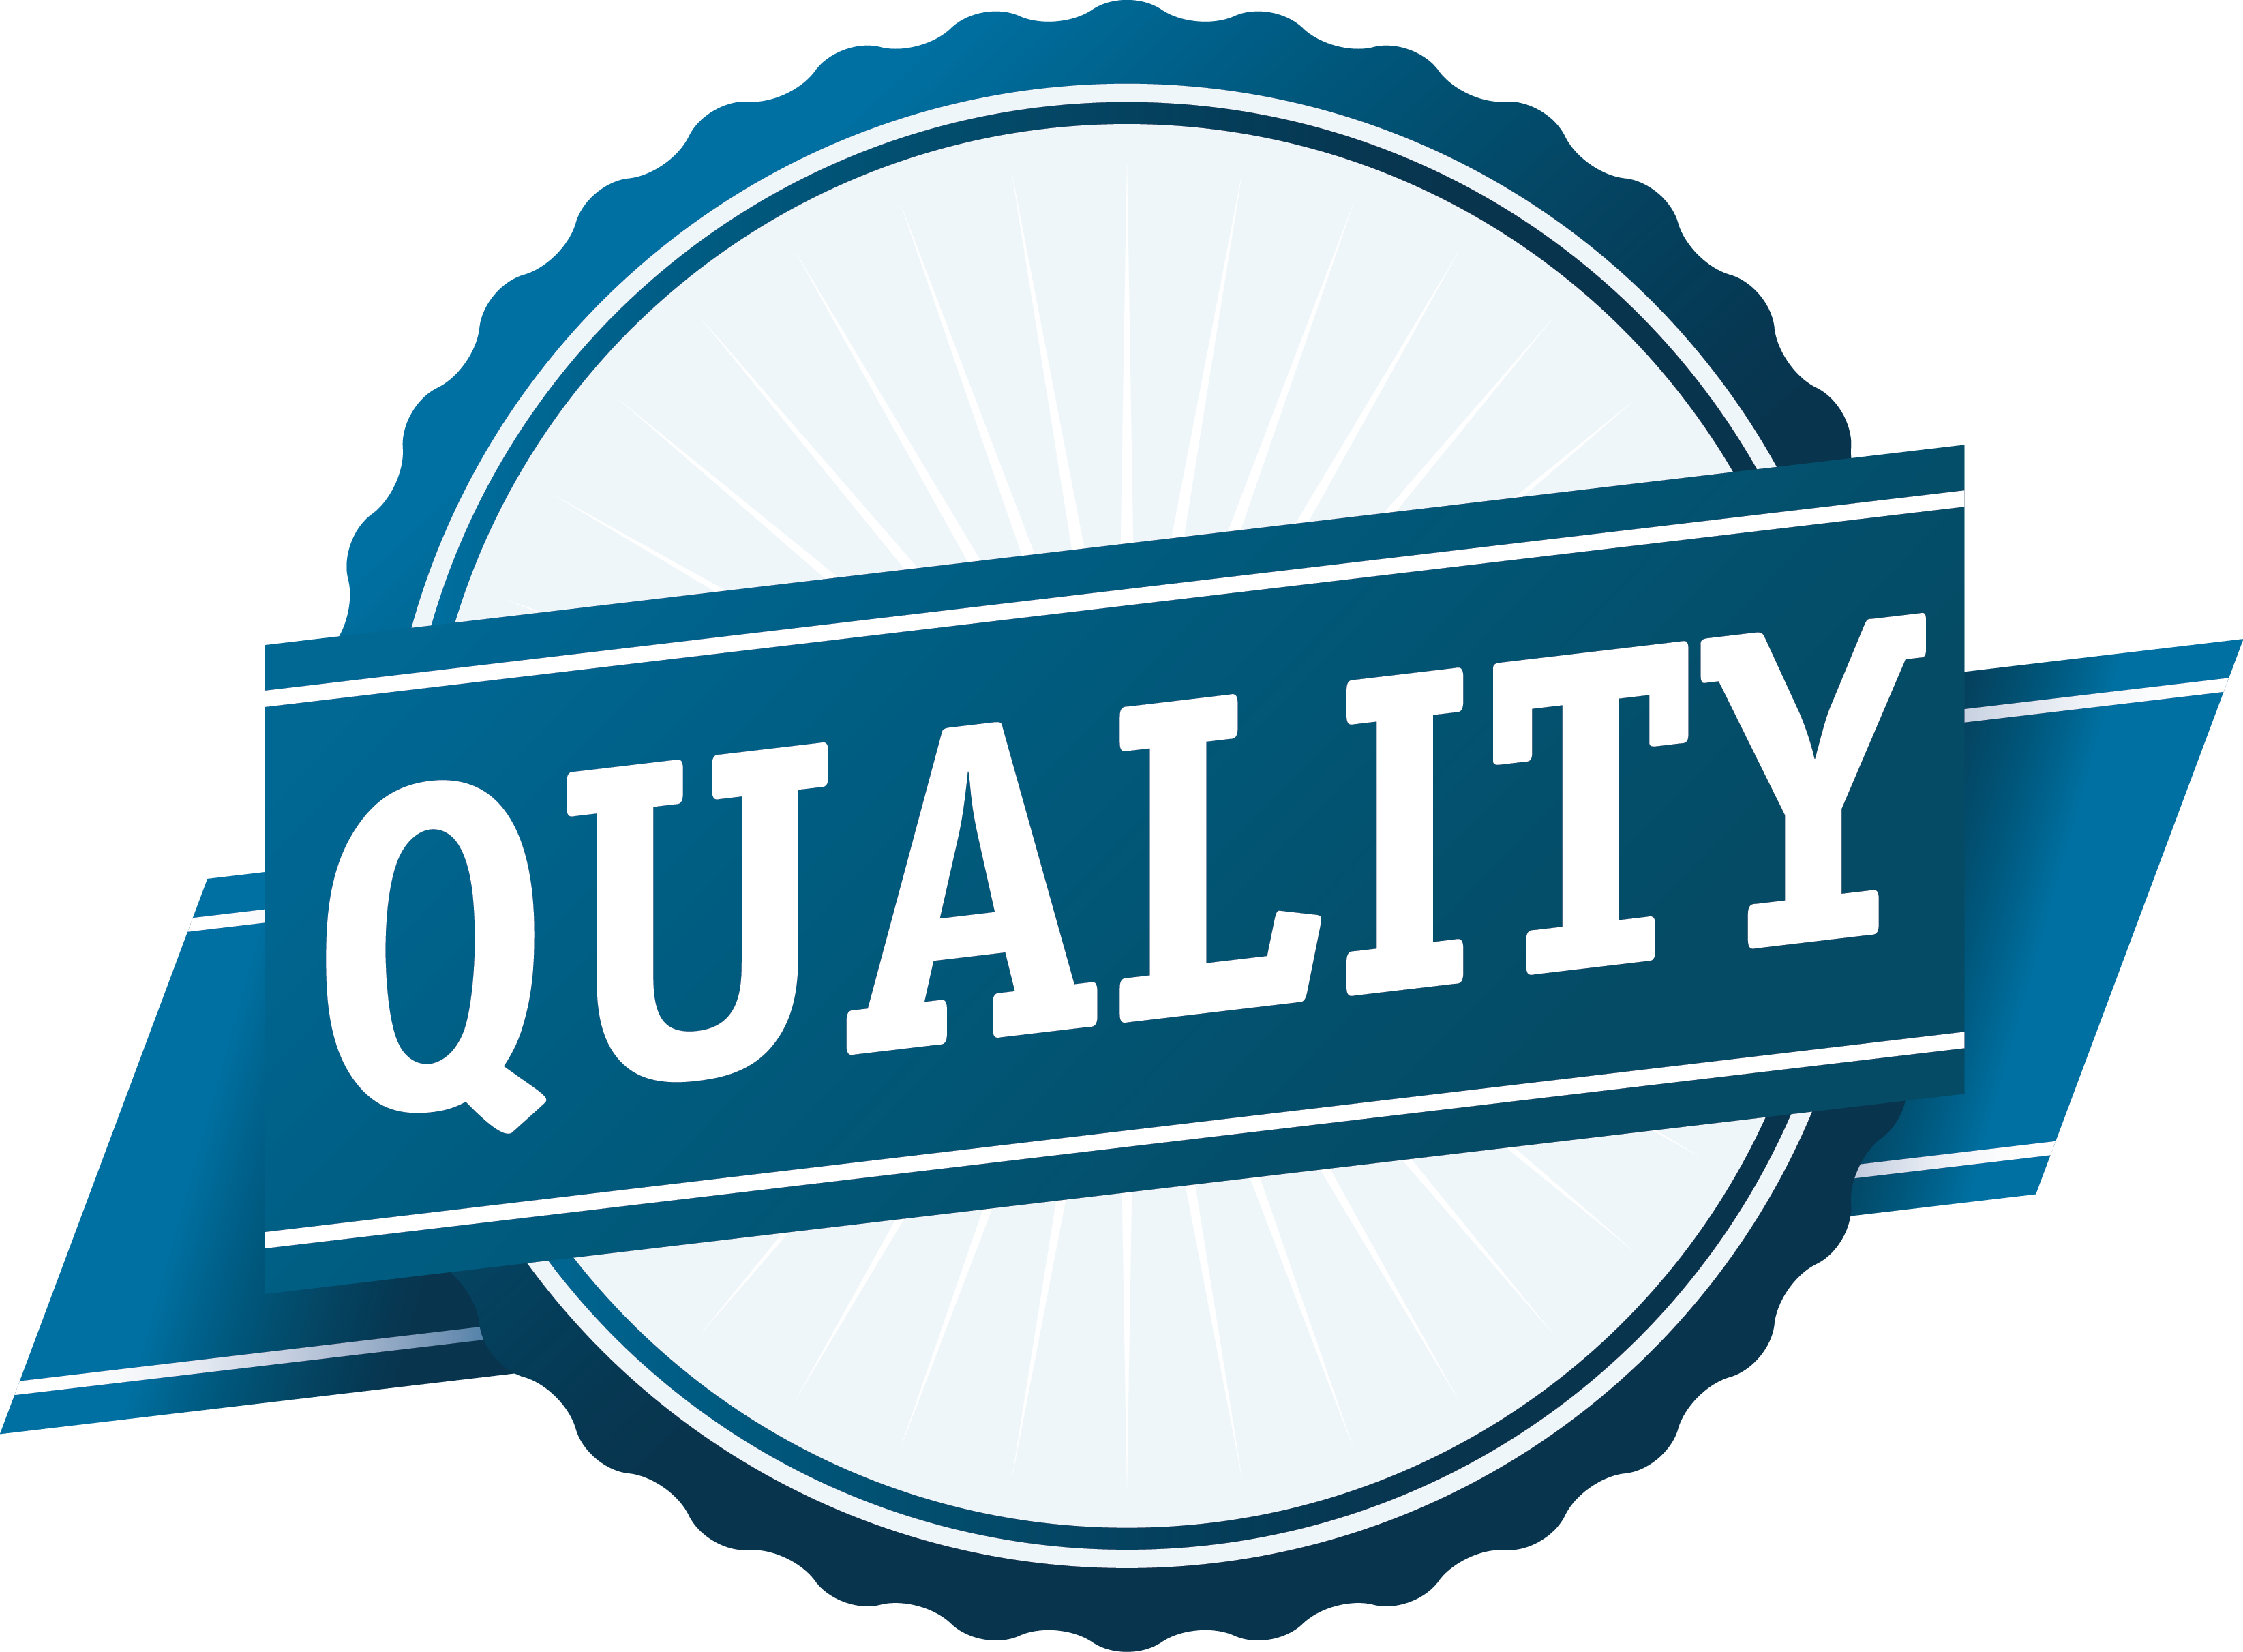 software testing quality assurance Quality assurance management software for your qa team knowing what to test is only the first step – you need to track test execution and document results as well.